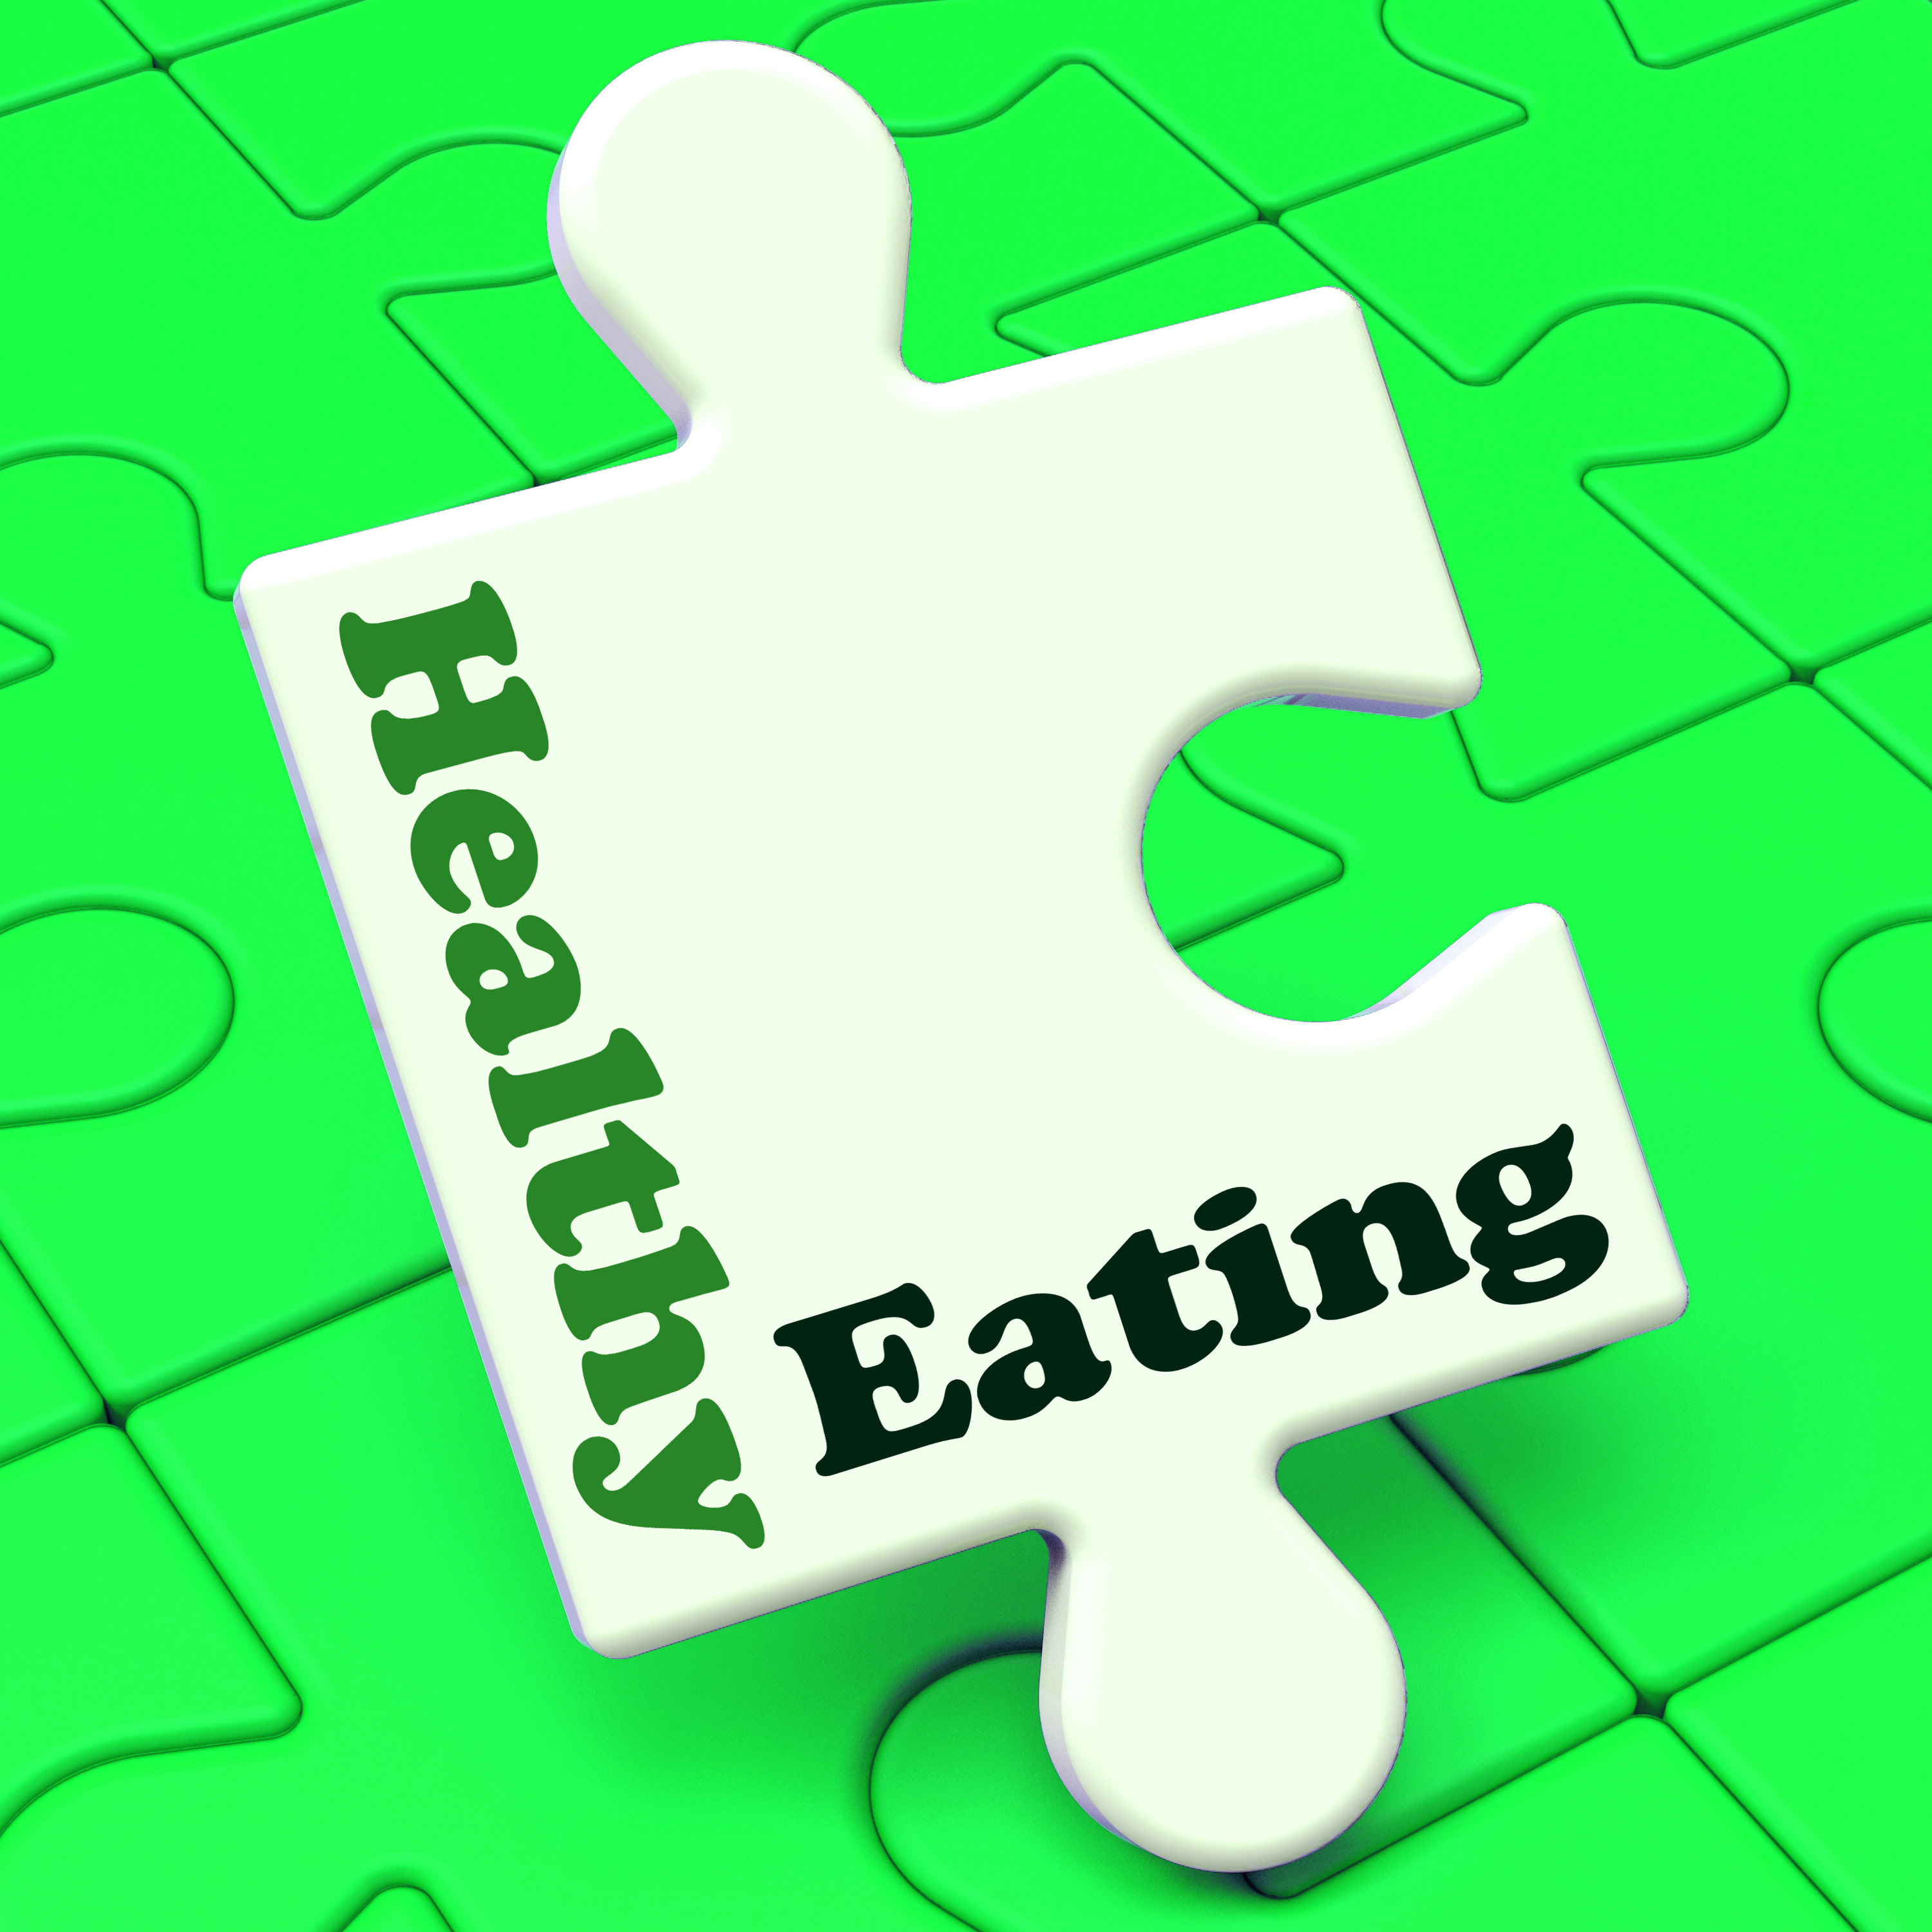 Healthy Eating Meaning Fresh, Nutritious And Low Fat Eating